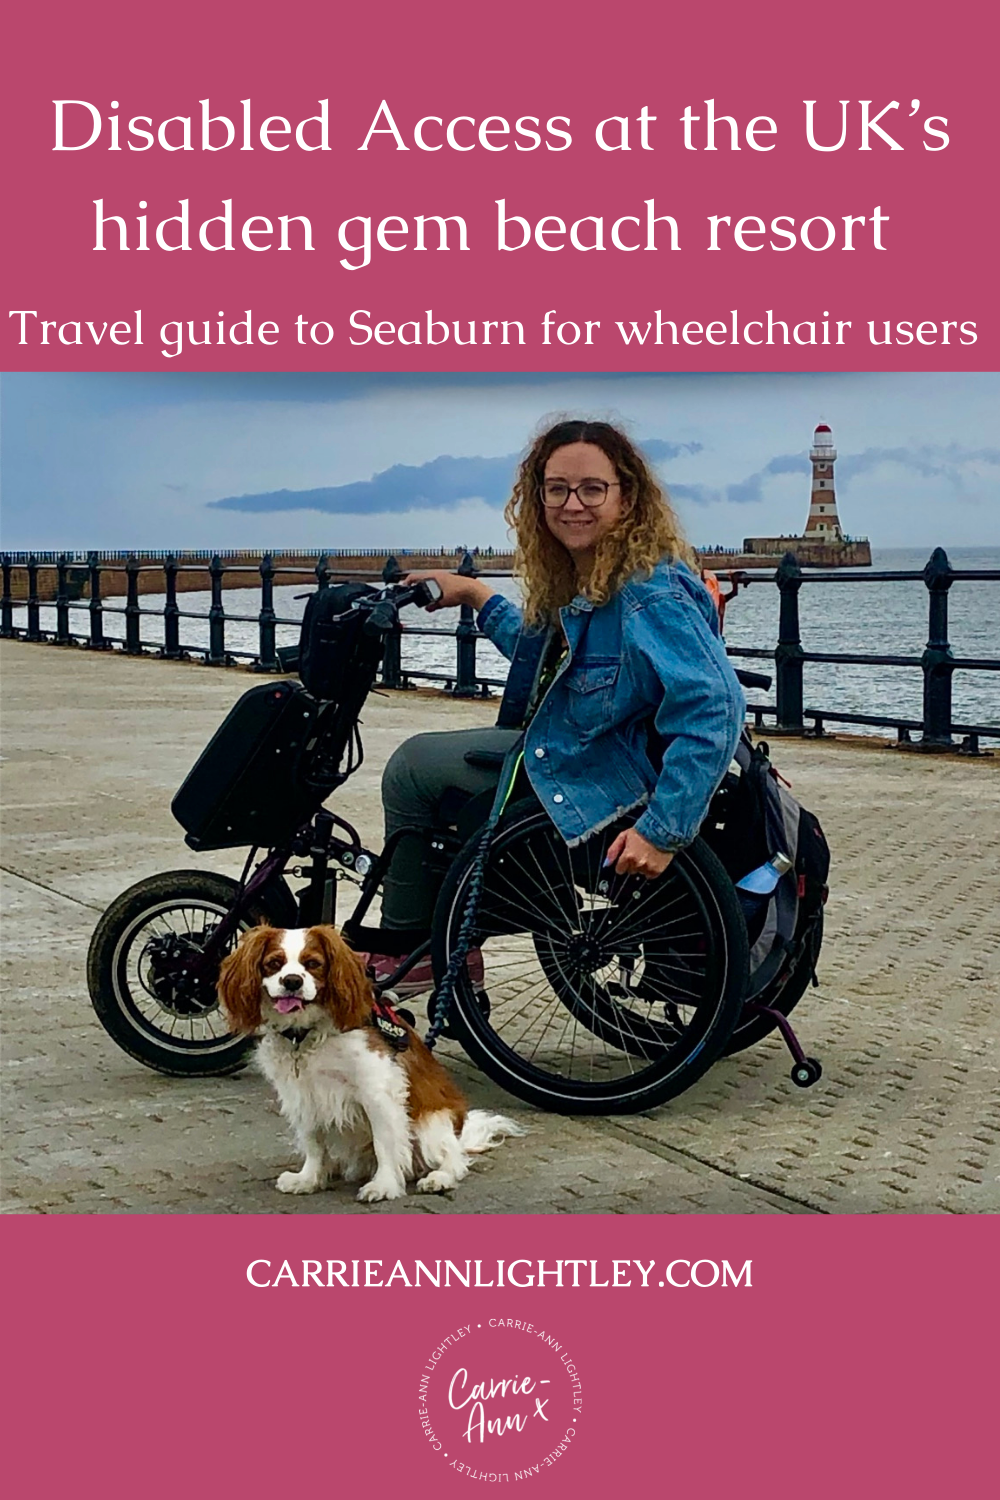 Top of image reads - Disabled Access at the UK's hidden gem beach resort: A travel guide to Seaburn for wheelchair users. Middle of image shows Carrie-Ann sitting on a pier in her wheelchair. Bottom of image has this blog's website address and logo